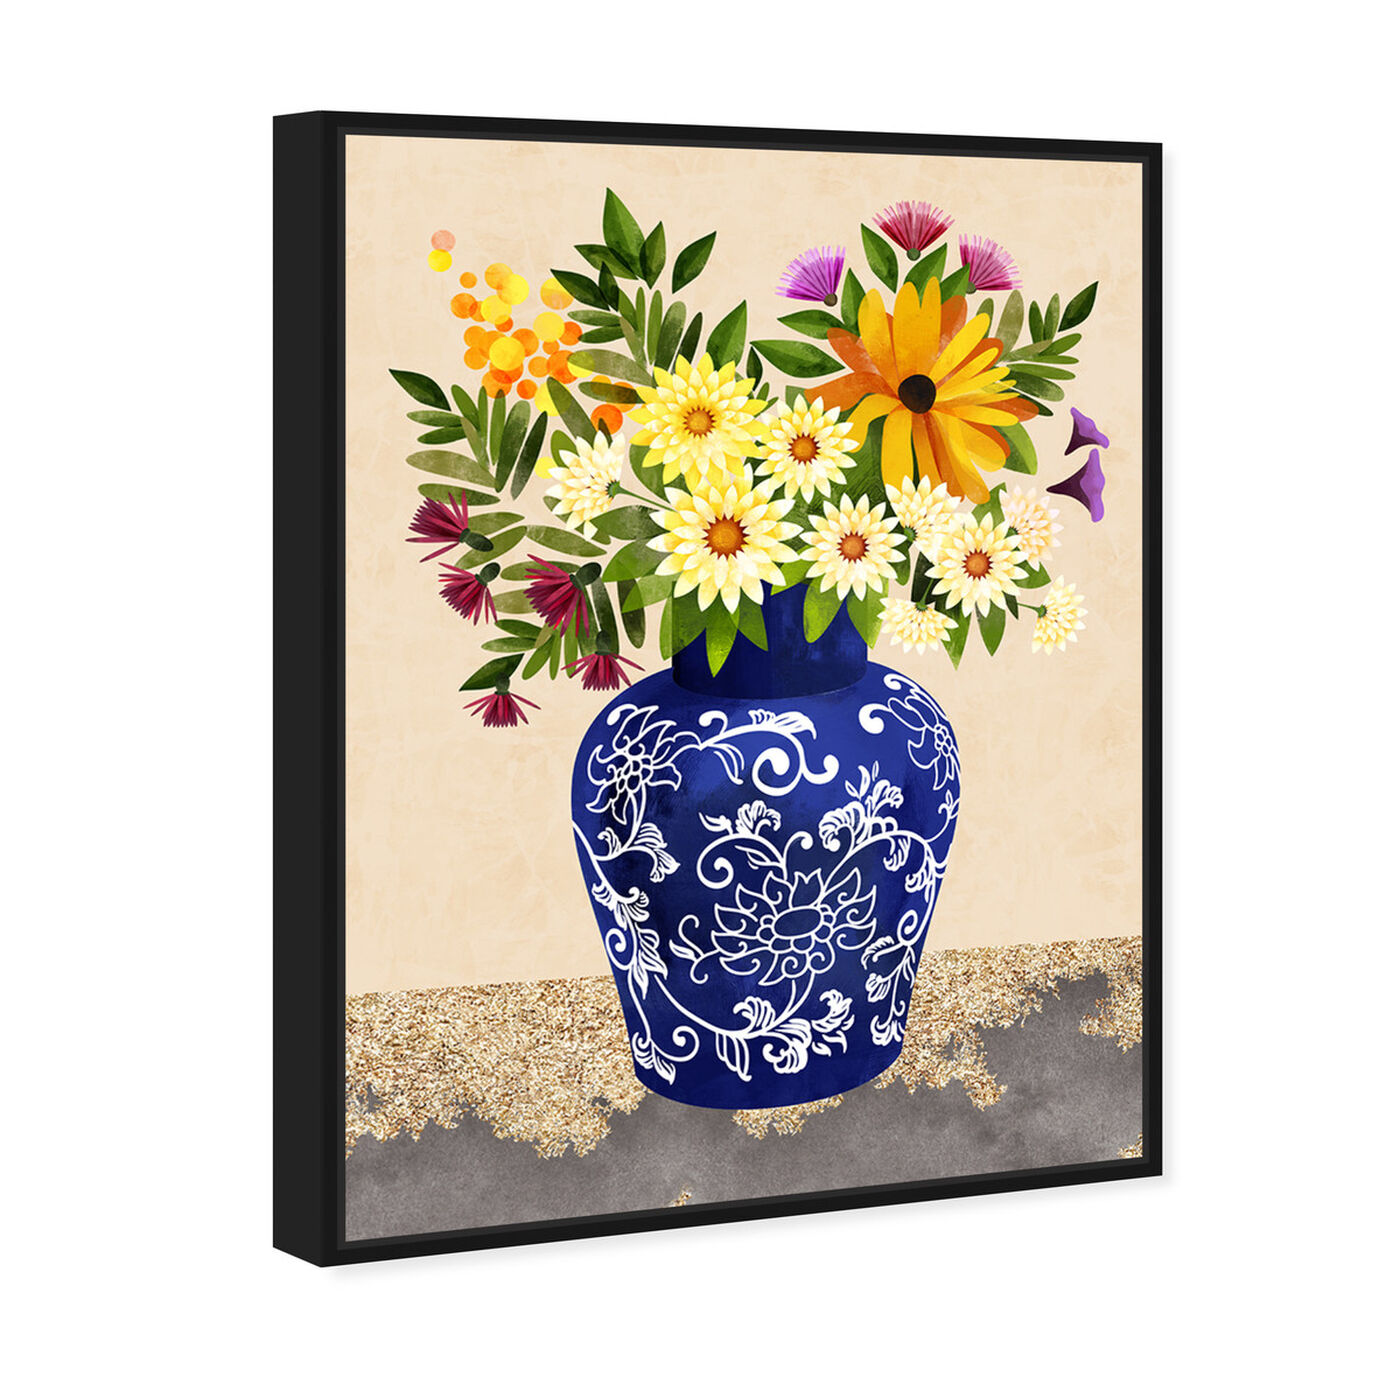 Angled view of Flor Porcelain II featuring floral and botanical and florals art.